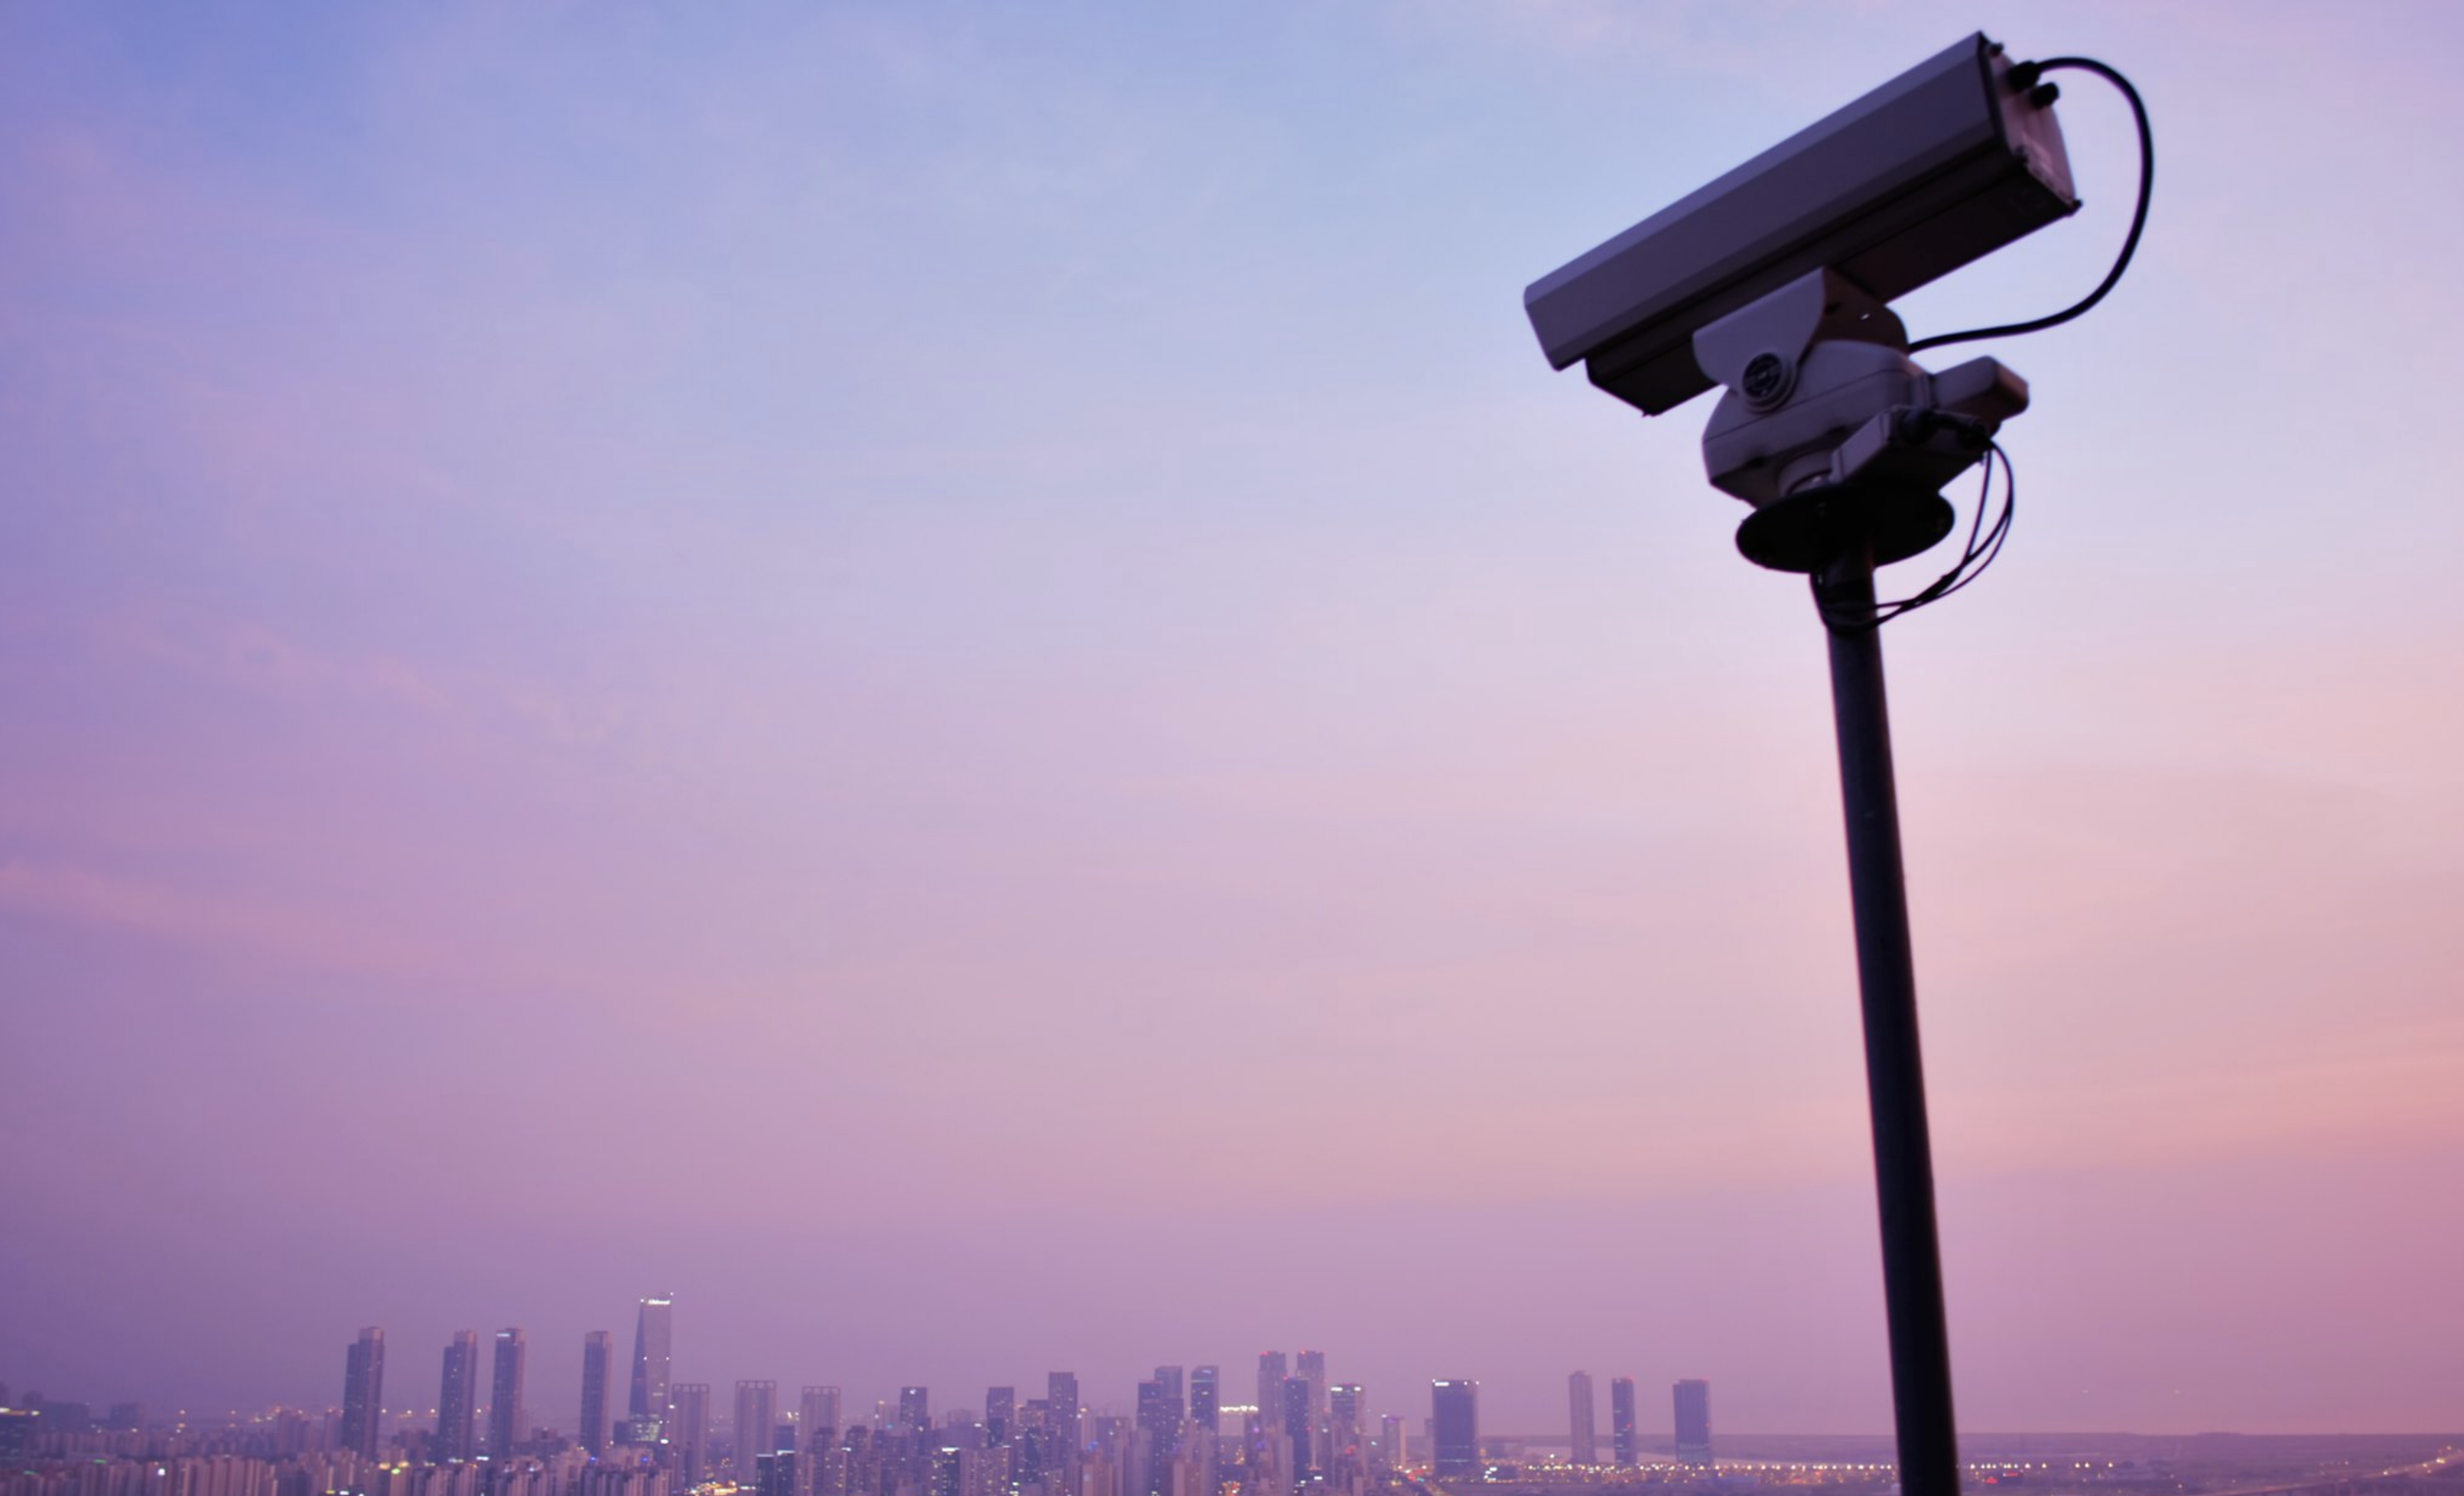 A CCTV camera looks at a city in the distance